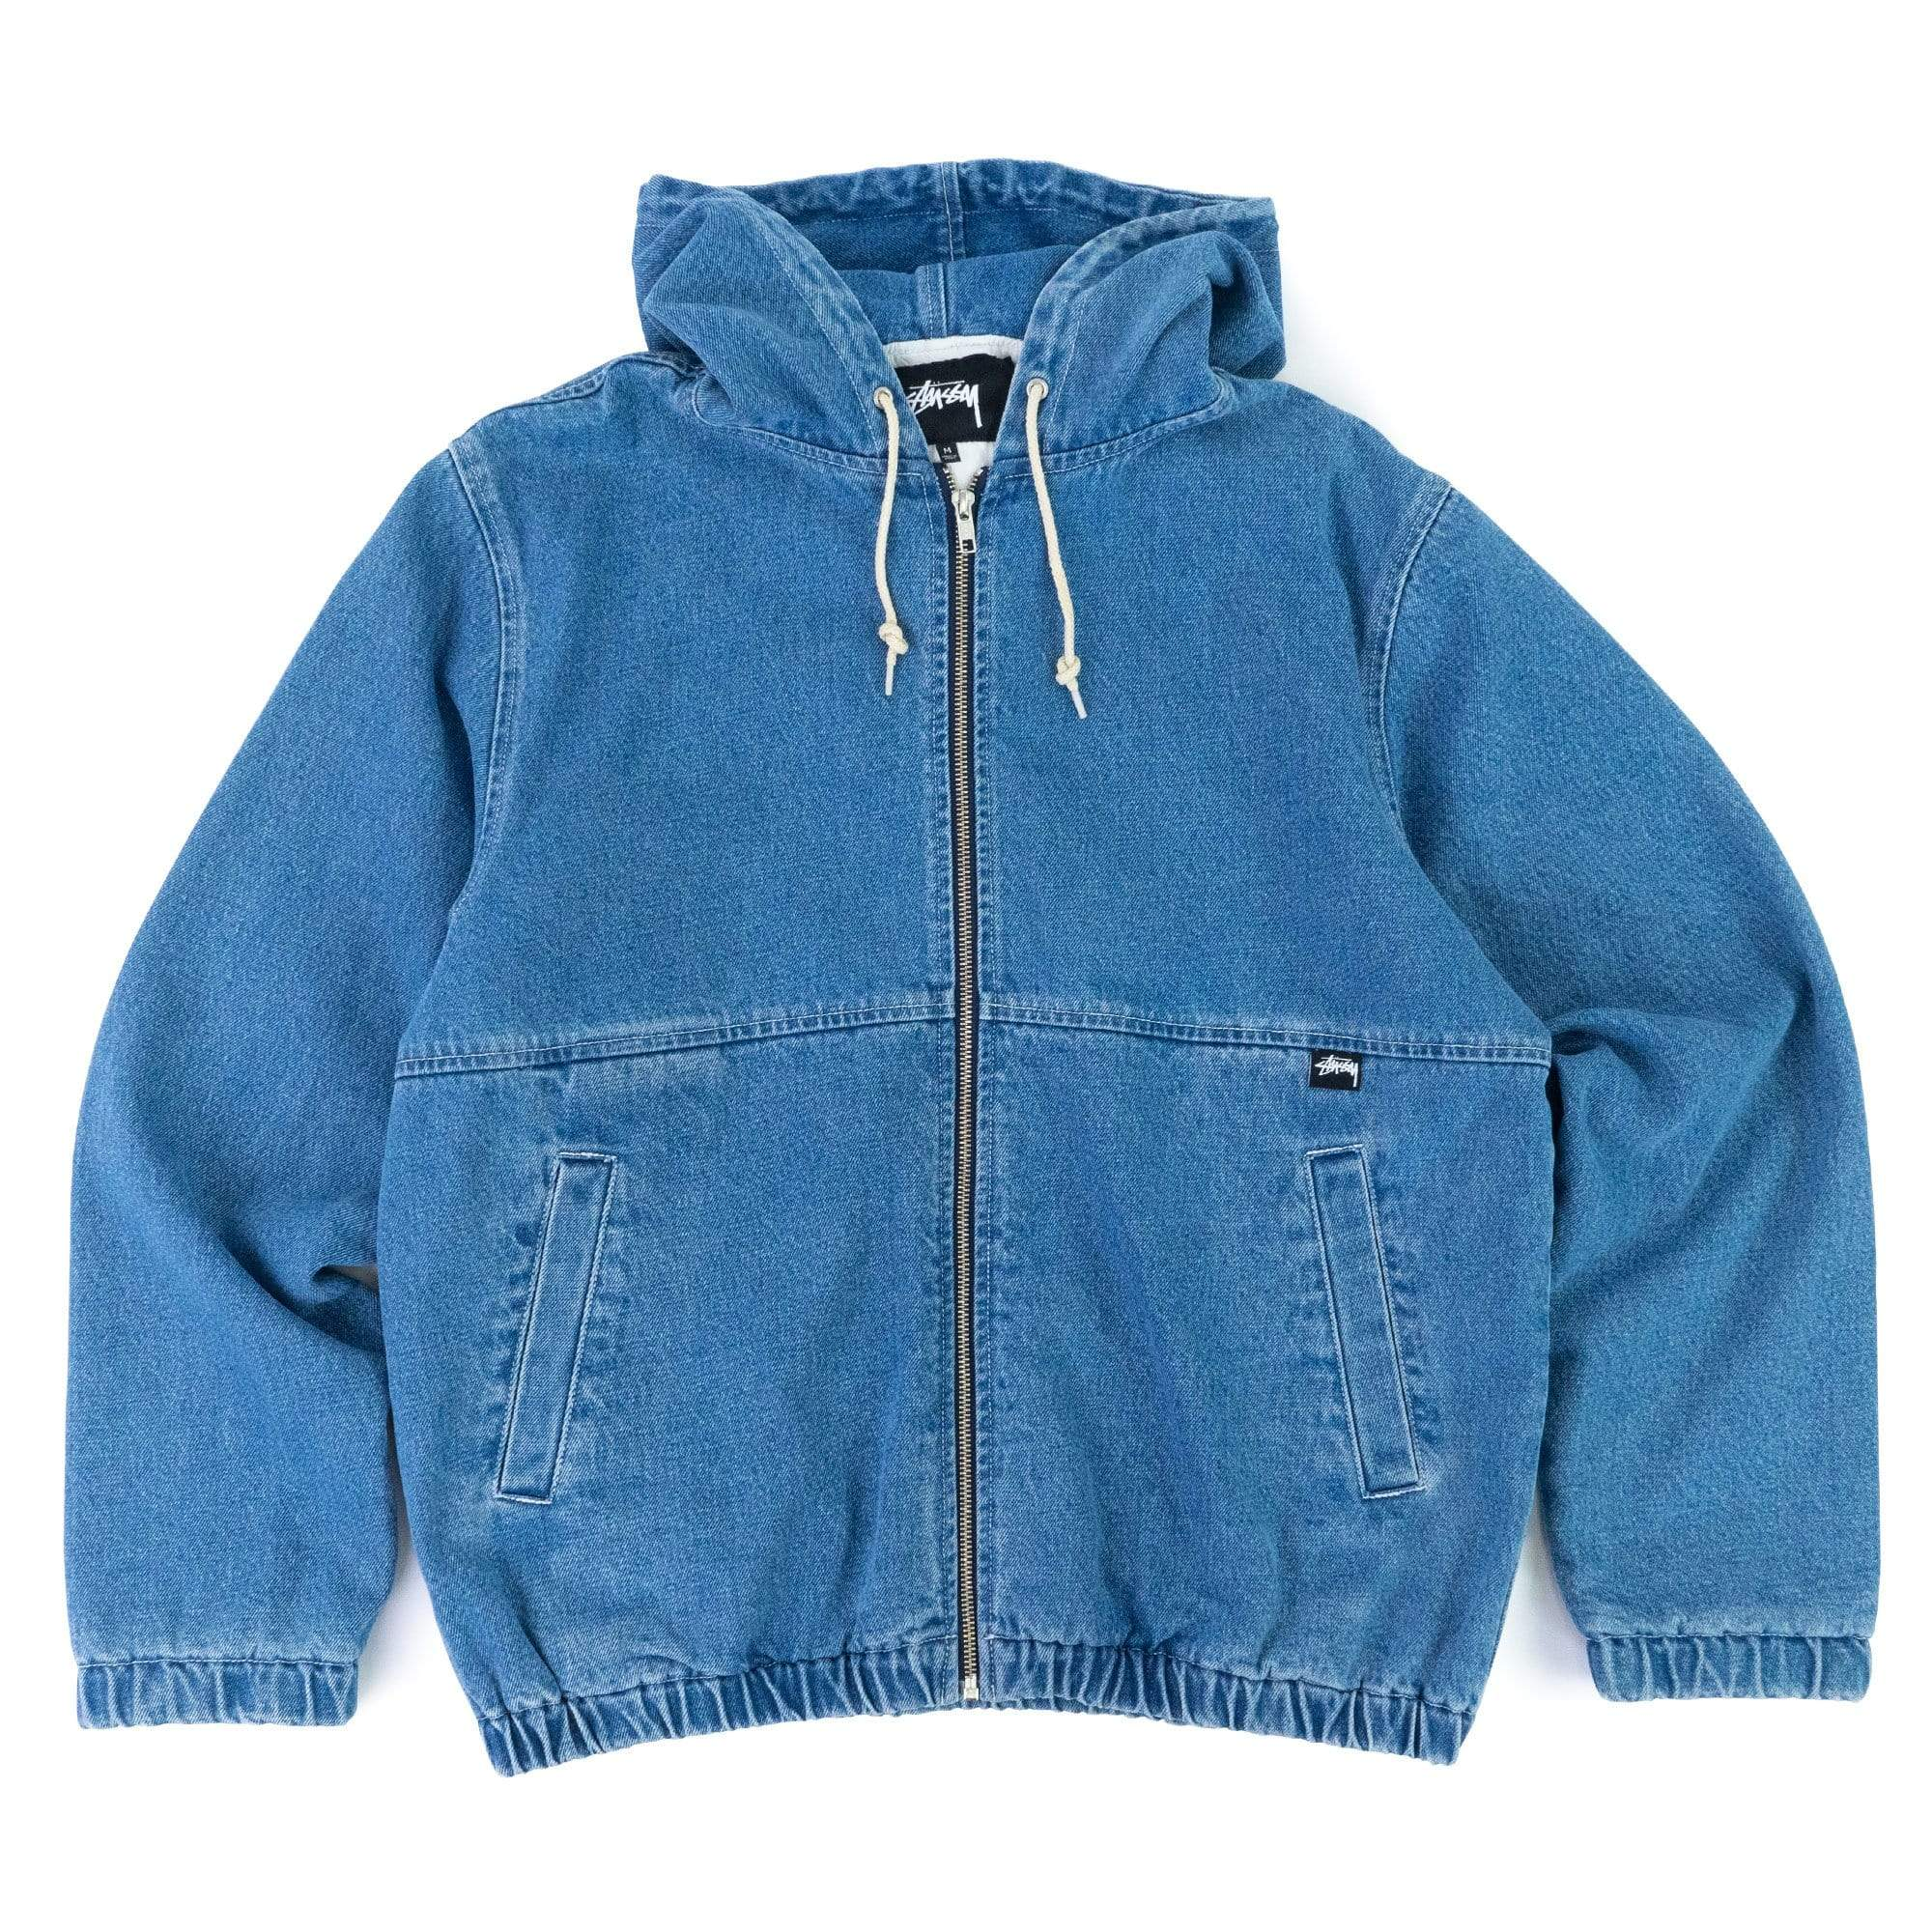 Stüssy Jacken M Denim Work Jacket